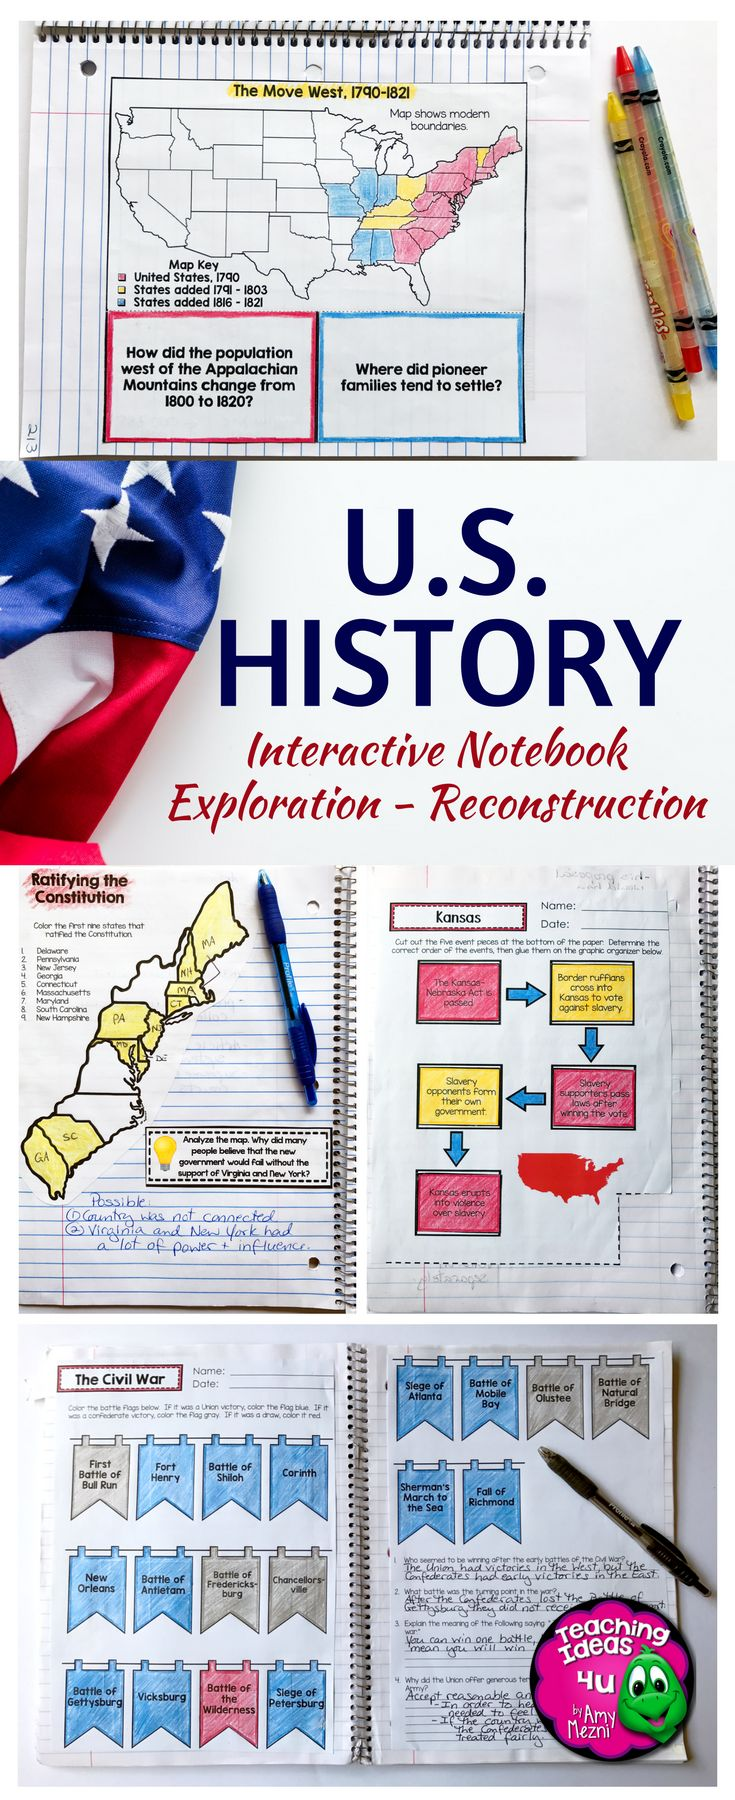 Best History Interactive Notebook Ideas On Pinterest - Interactive us history map